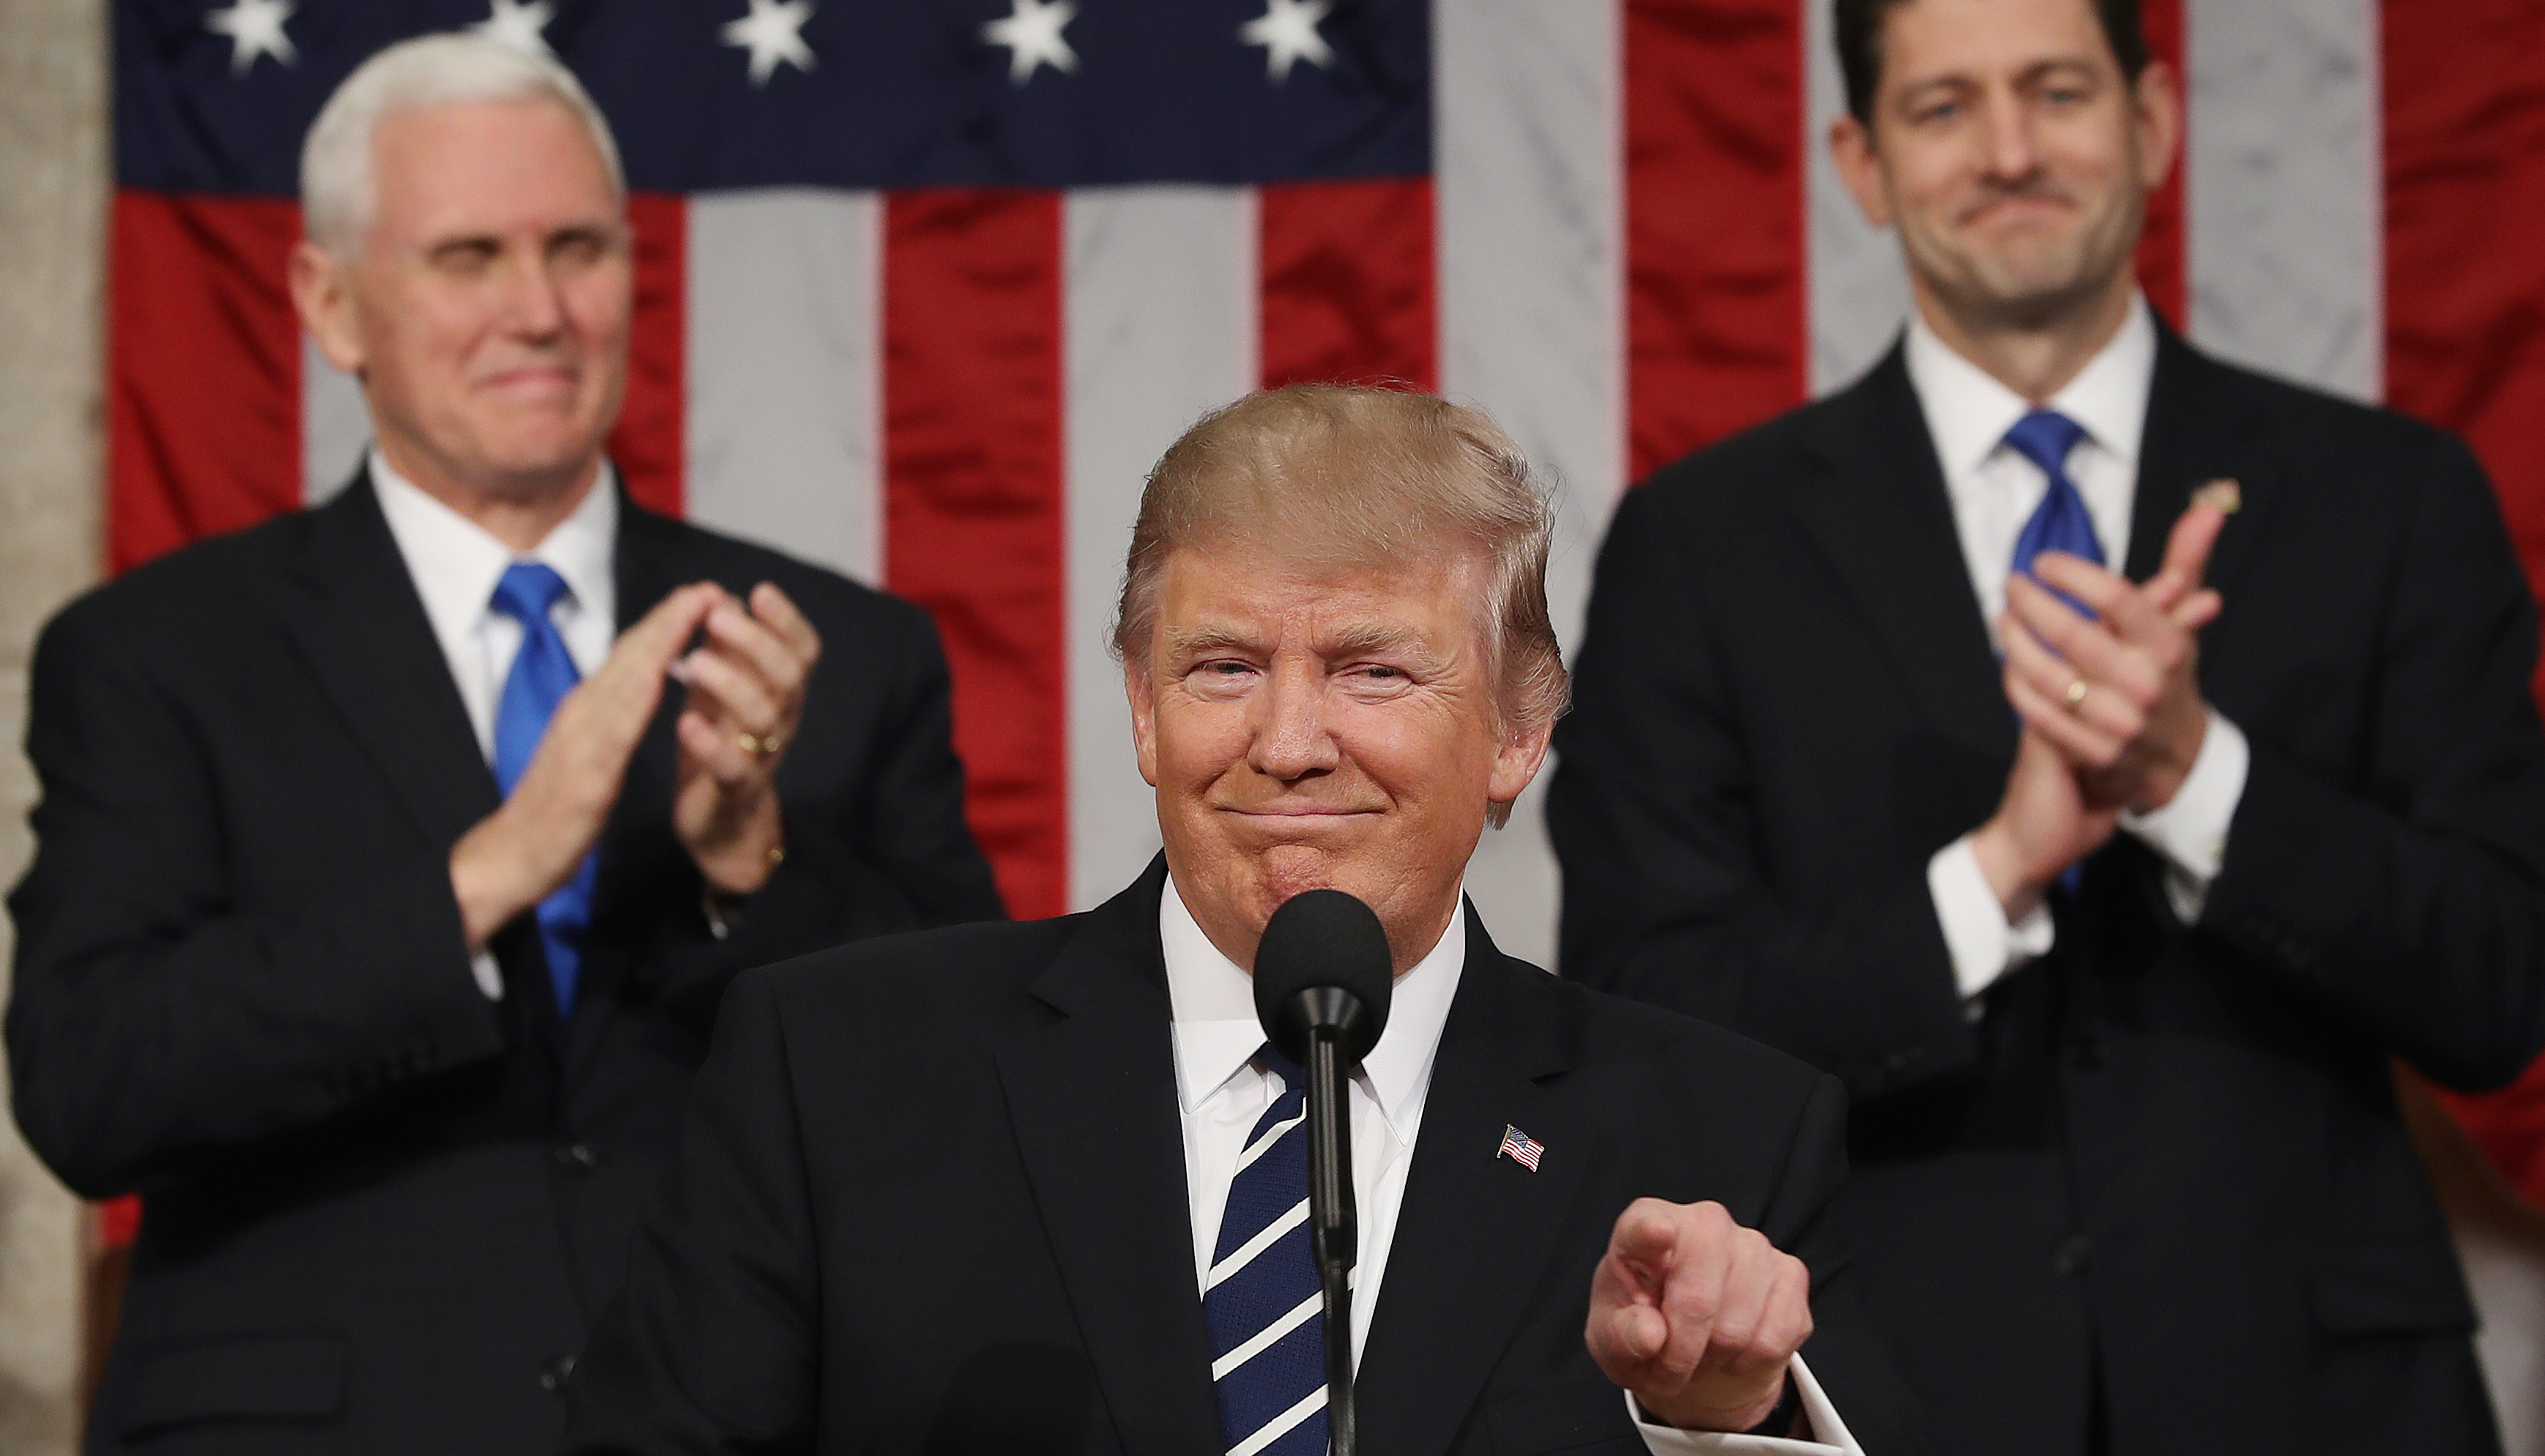 US Vice President Mike Pence (L) and Speaker of the House Paul Ryan (R) applaud as US President Donald J. Trump (C) arrives to deliver his first address to a joint session of Congress from the floor of the House of Representatives in Washington, DC, USA, 28 February 2017.